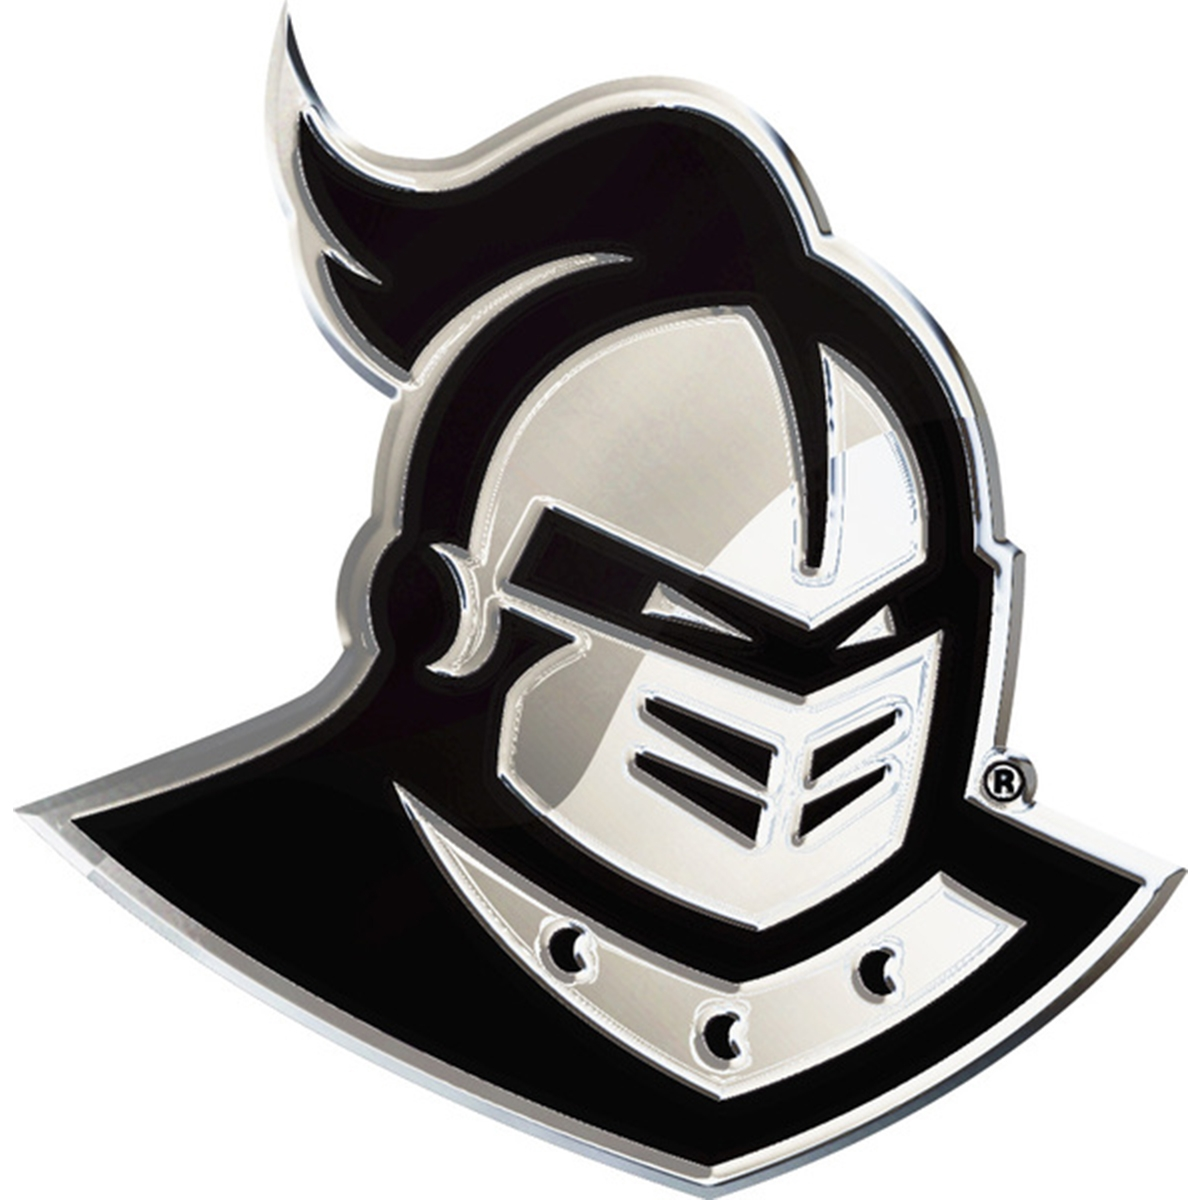 Details about University of Central Florida UCF Knights Logo Auto Solid  Metal Emblem.